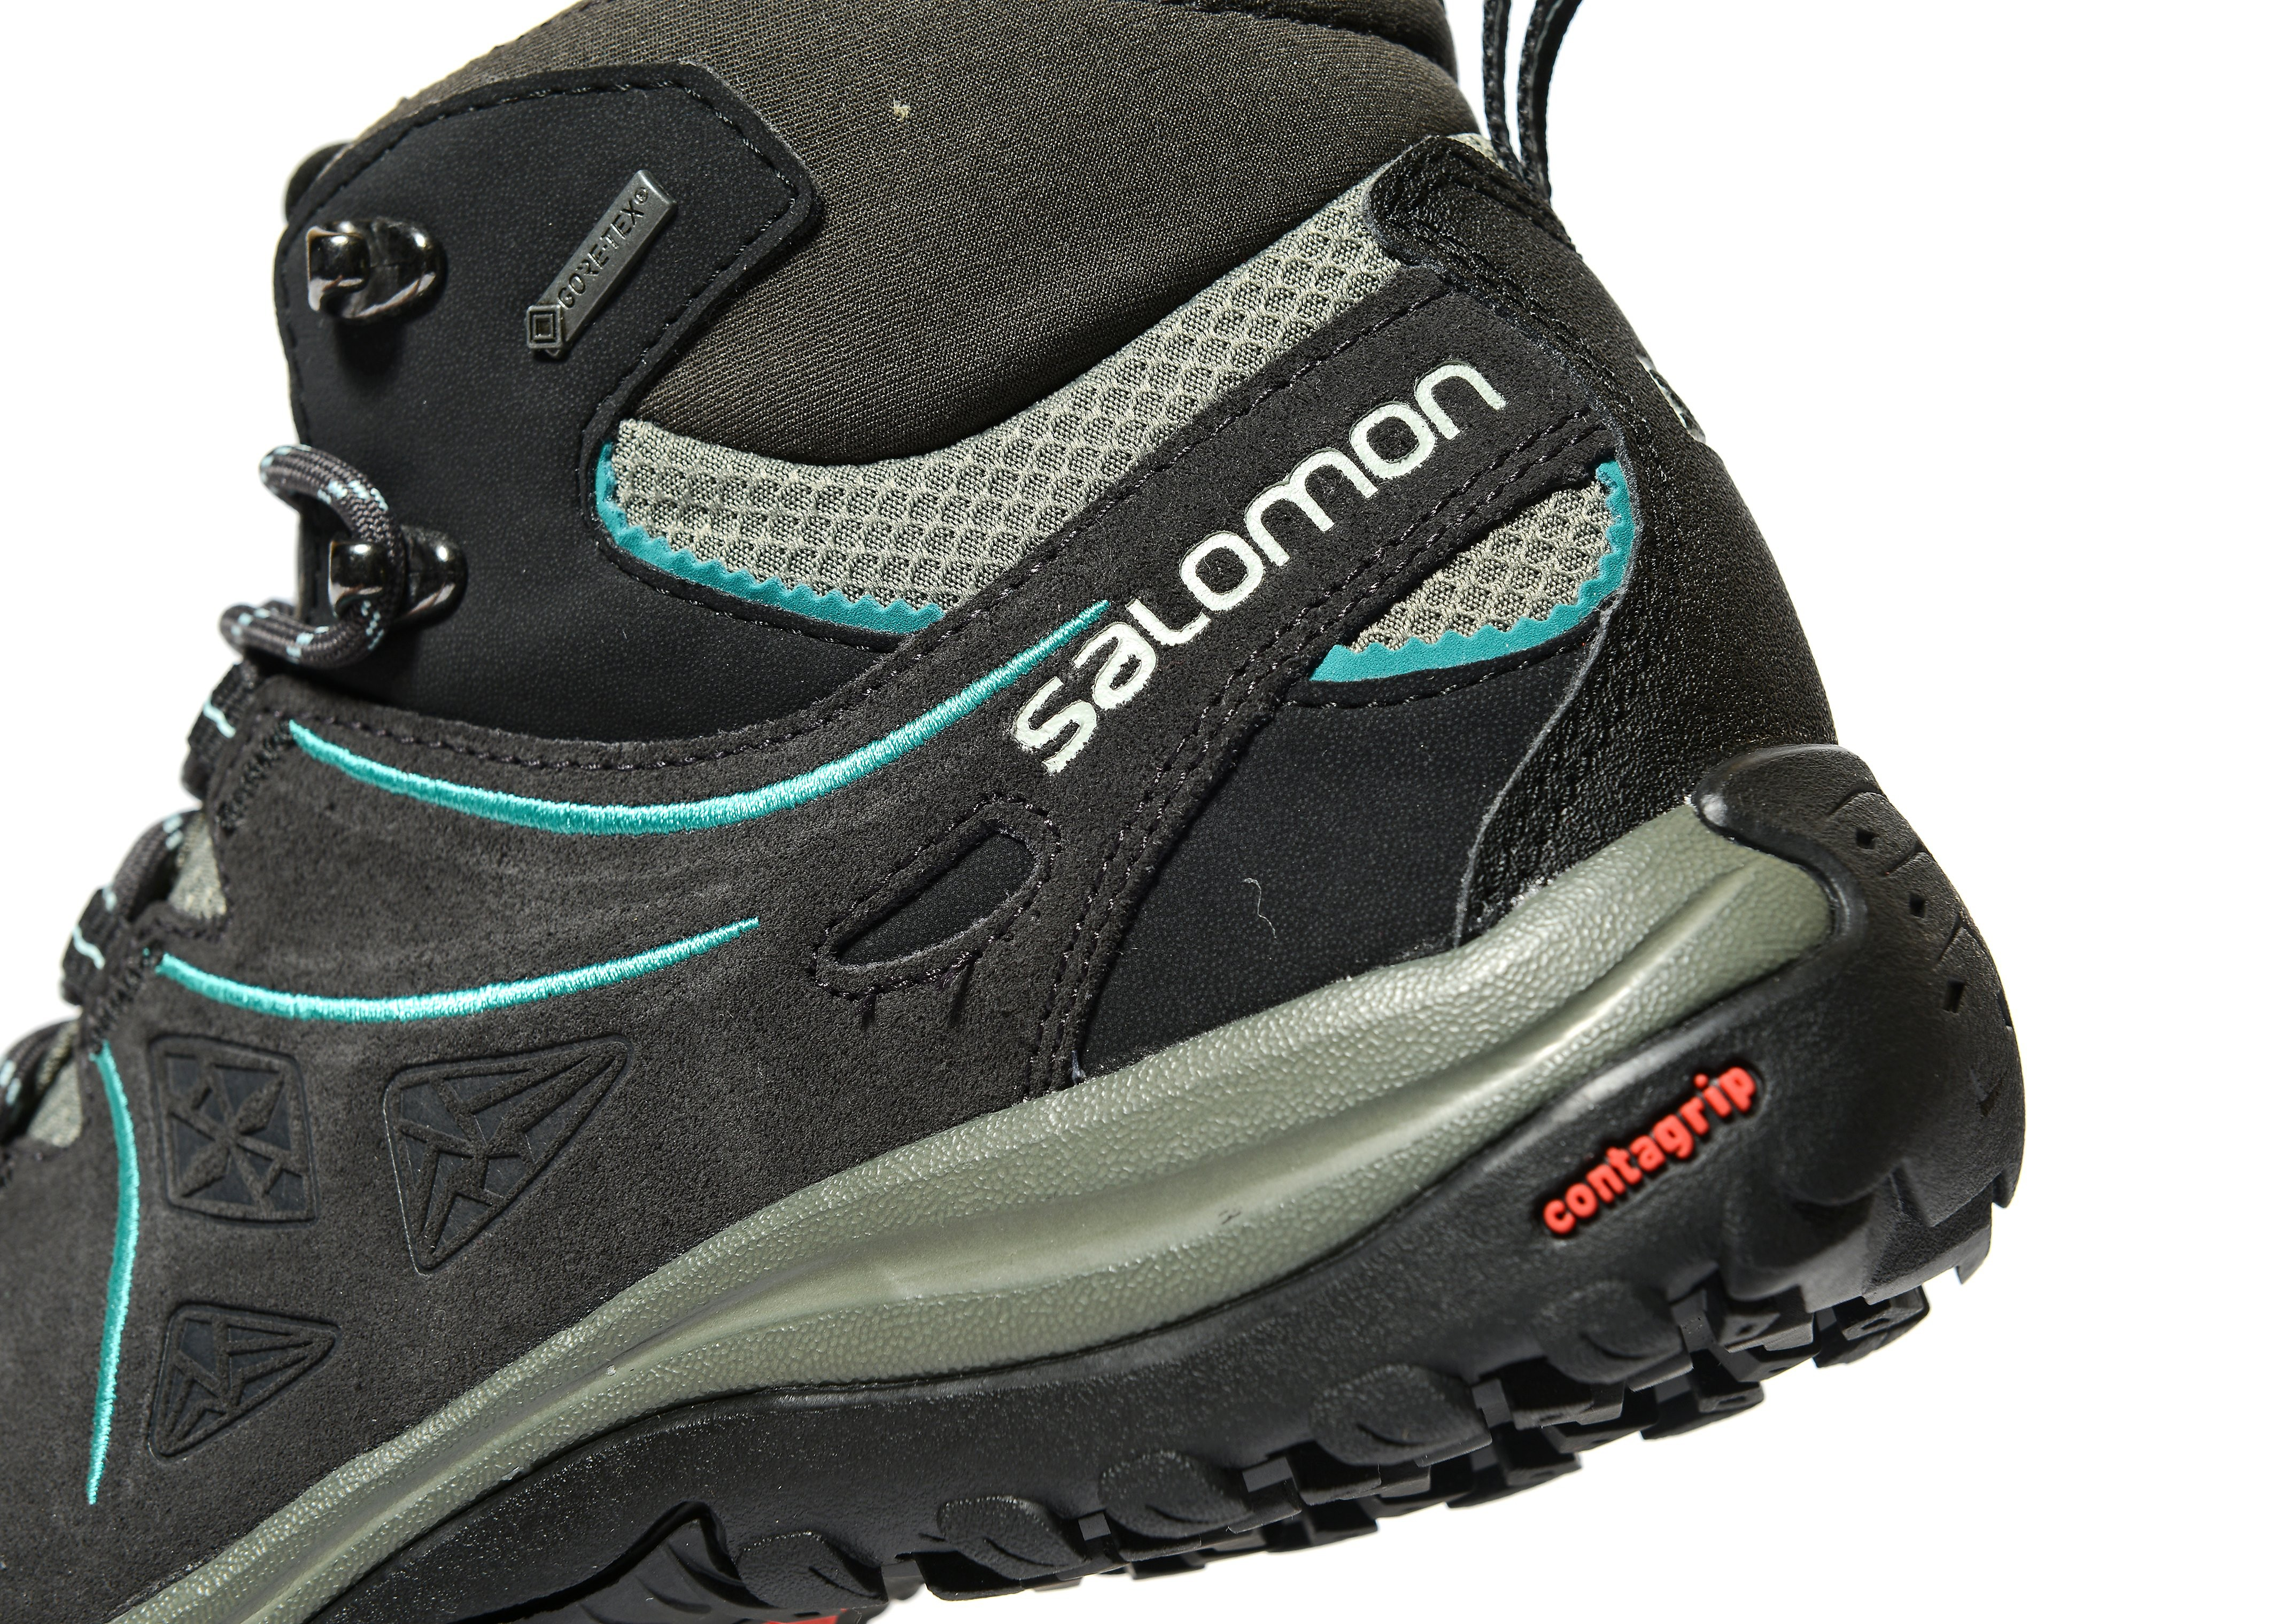 Salomon Ellipse 2 Mid GTX Hiking Boots Women's